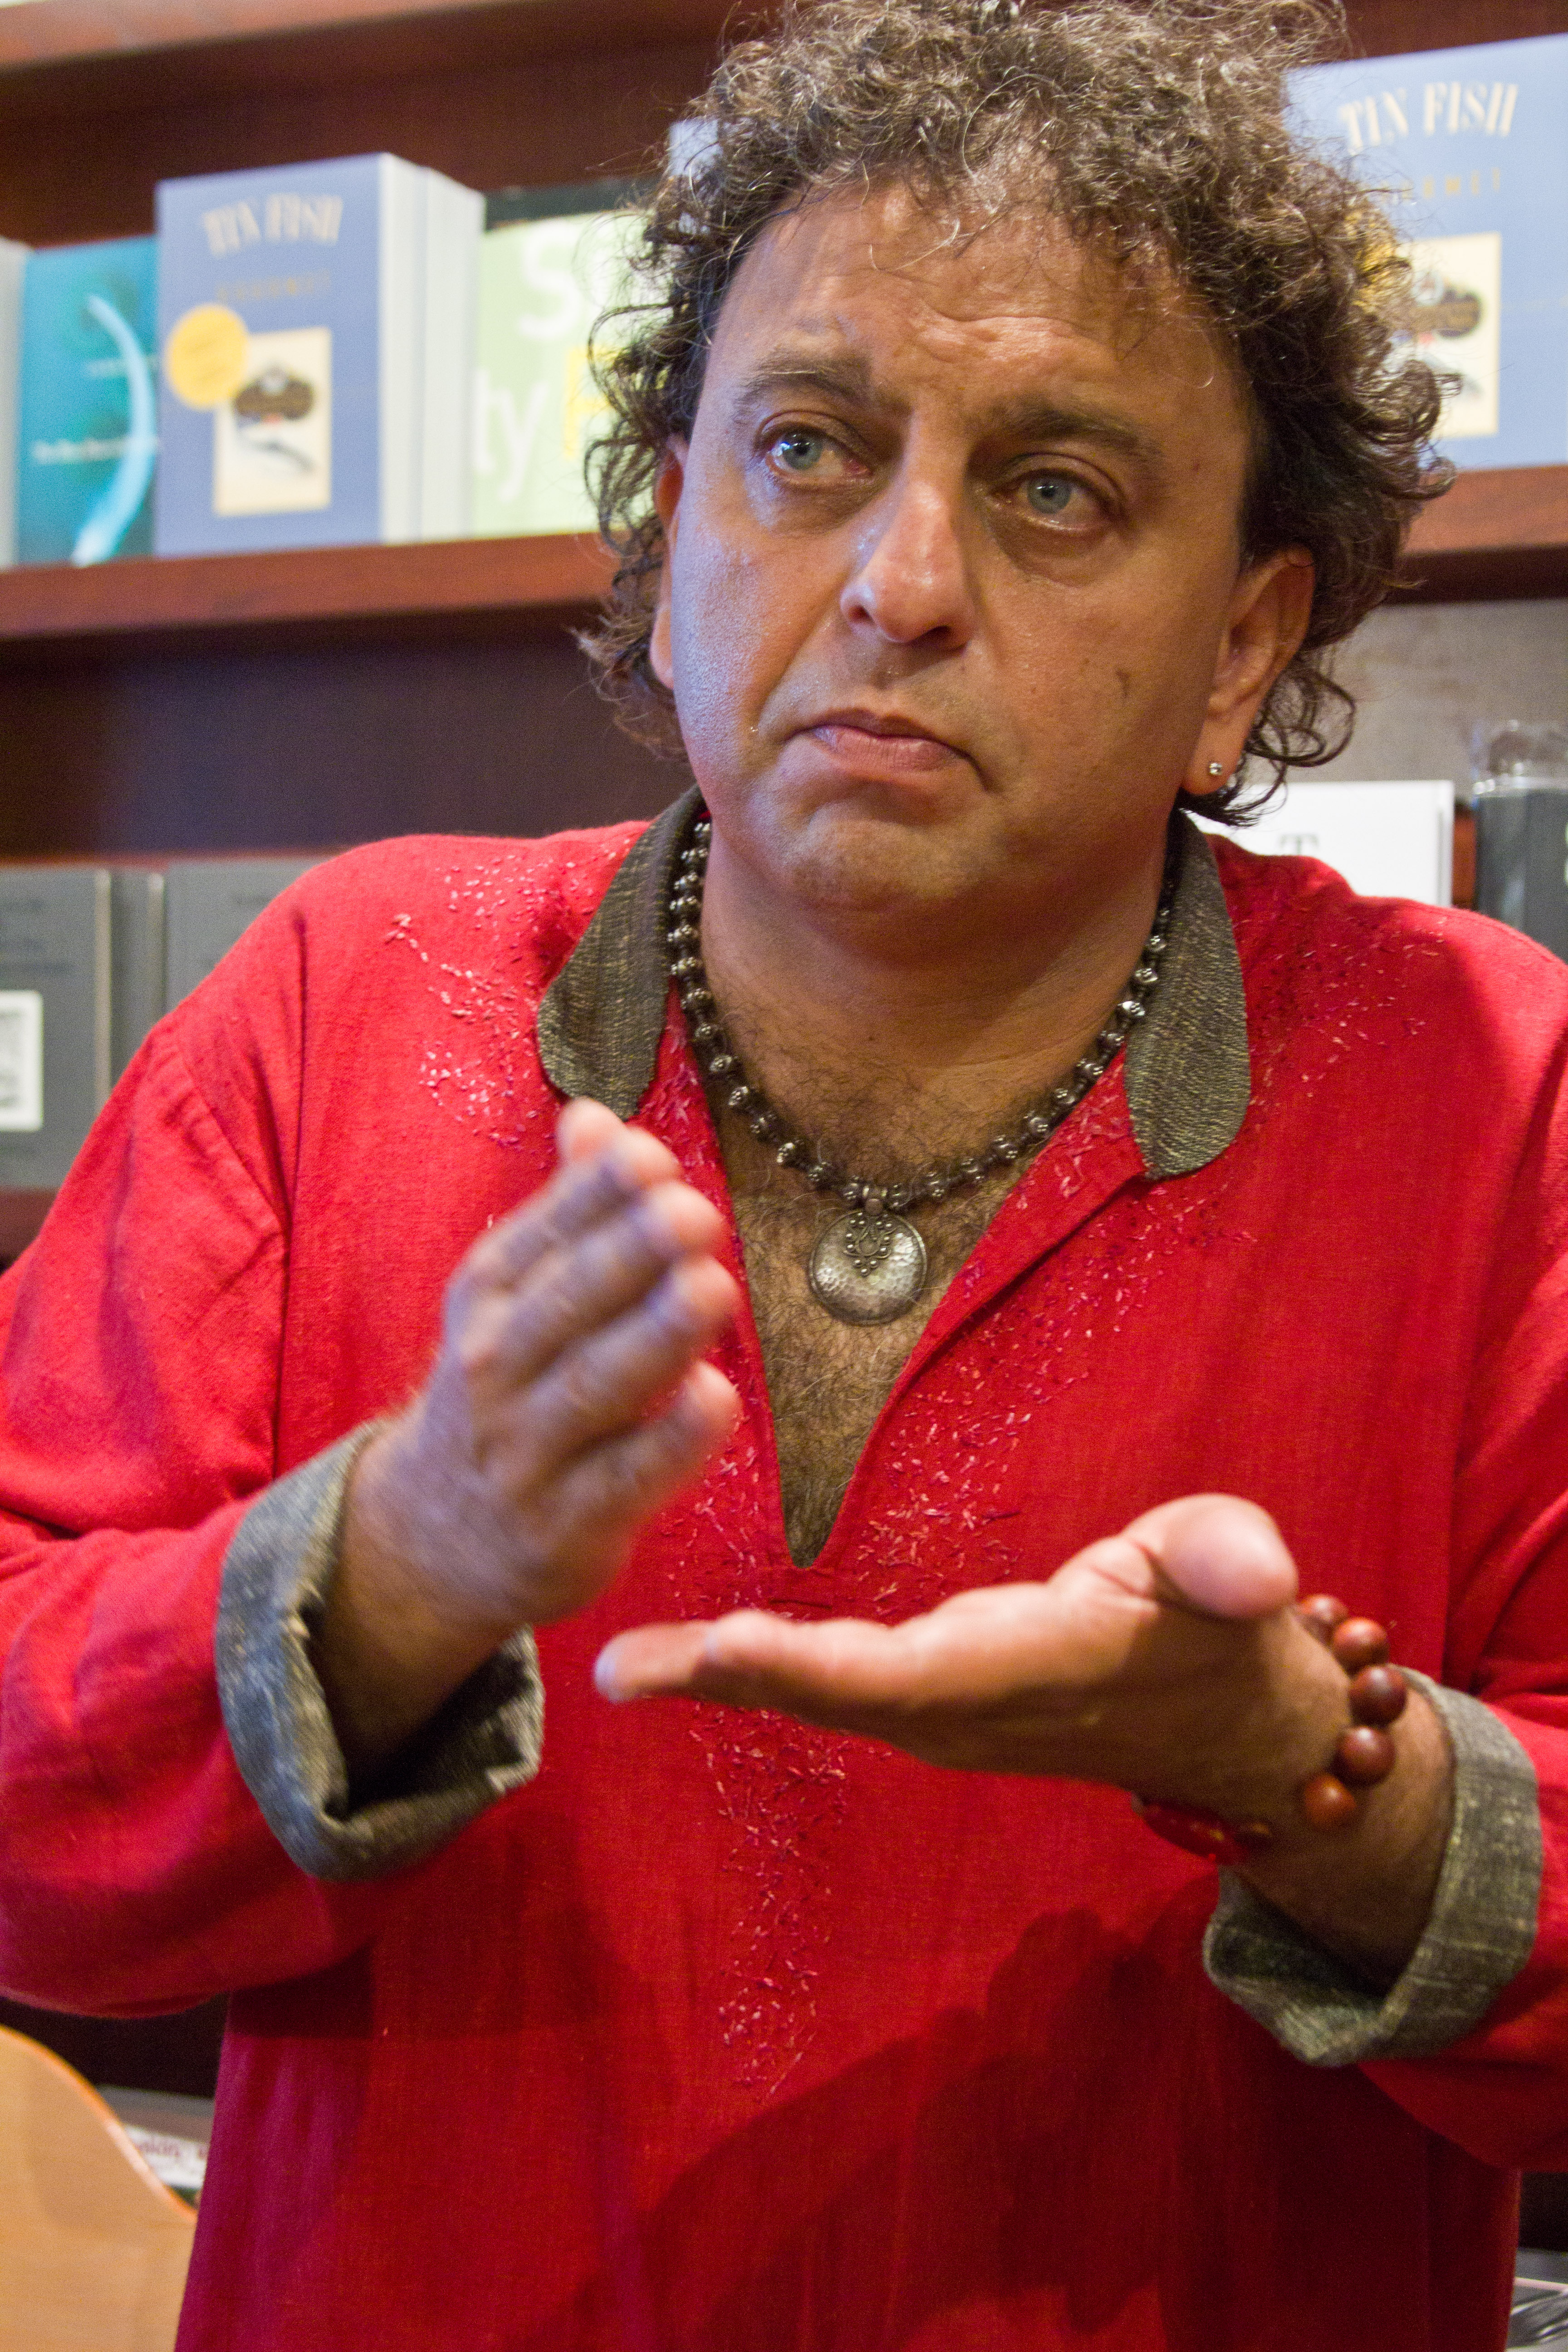 The 53-year old son of father (?) and mother(?) Vikram Vij in 2018 photo. Vikram Vij earned a  million dollar salary - leaving the net worth at 18 million in 2018